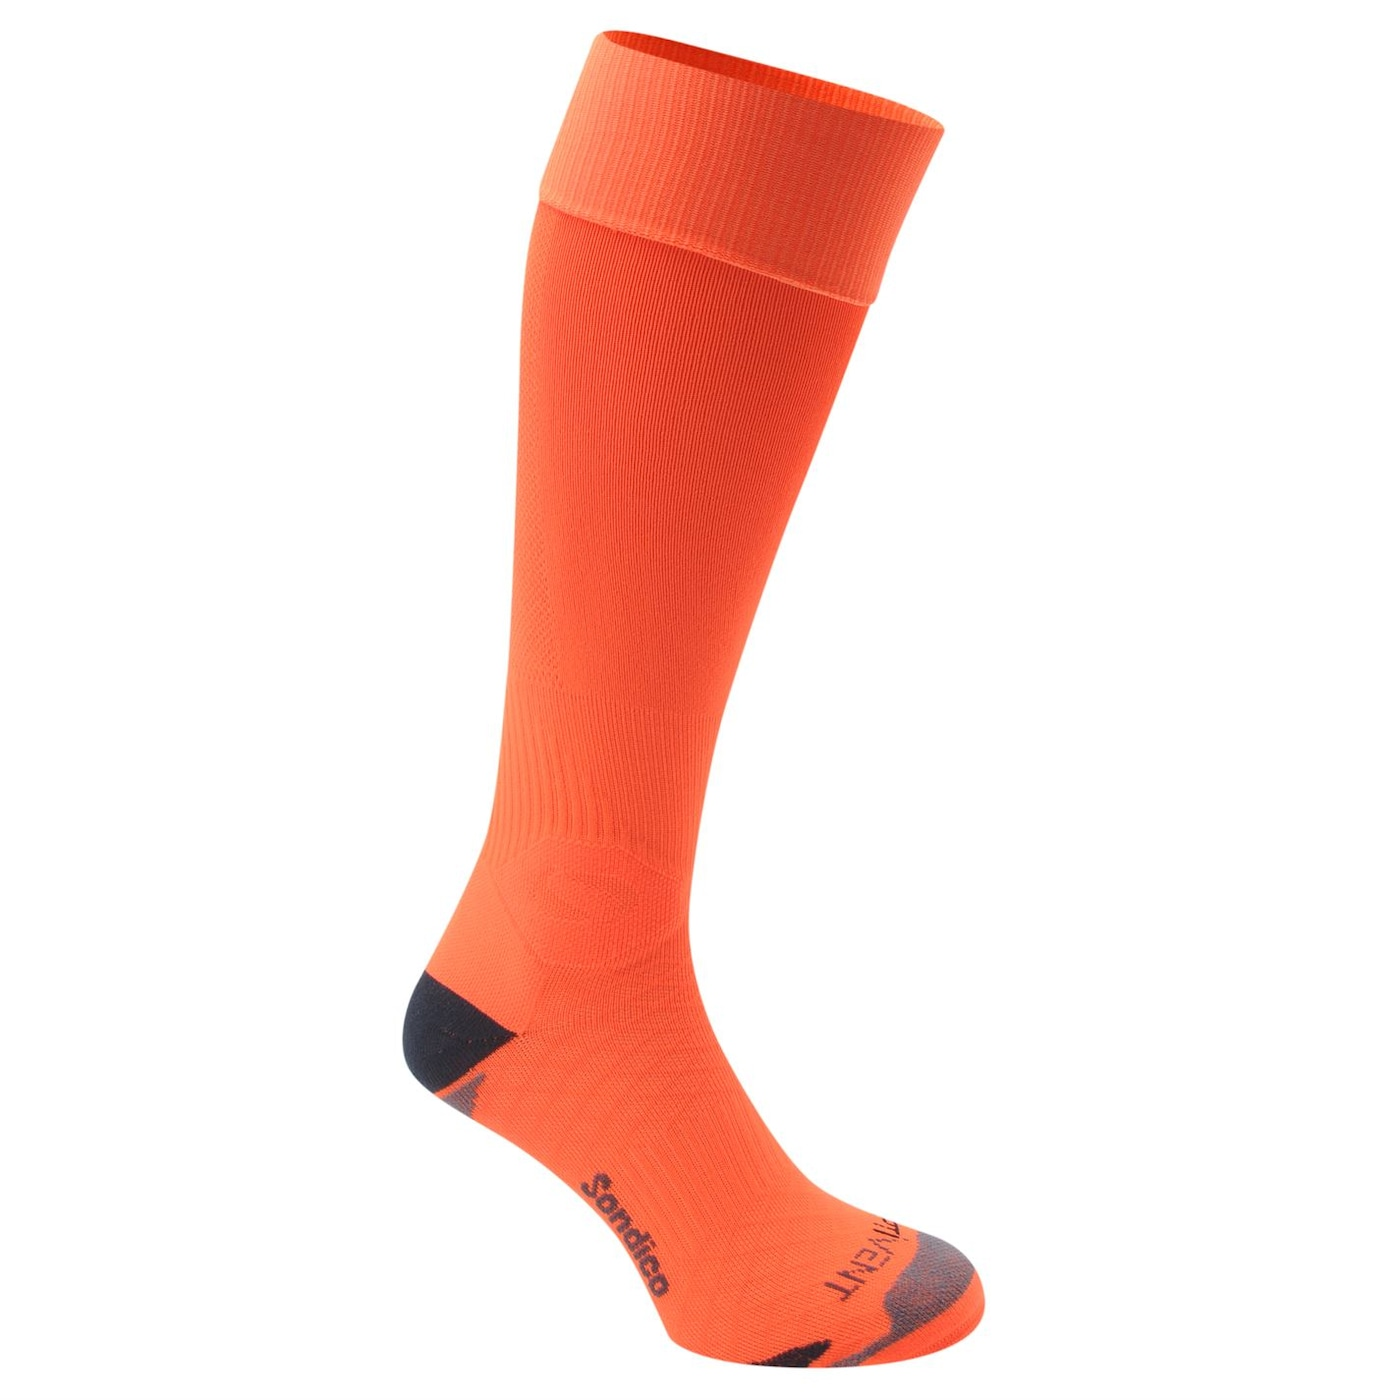 Sondico Elite Football Socks pánské